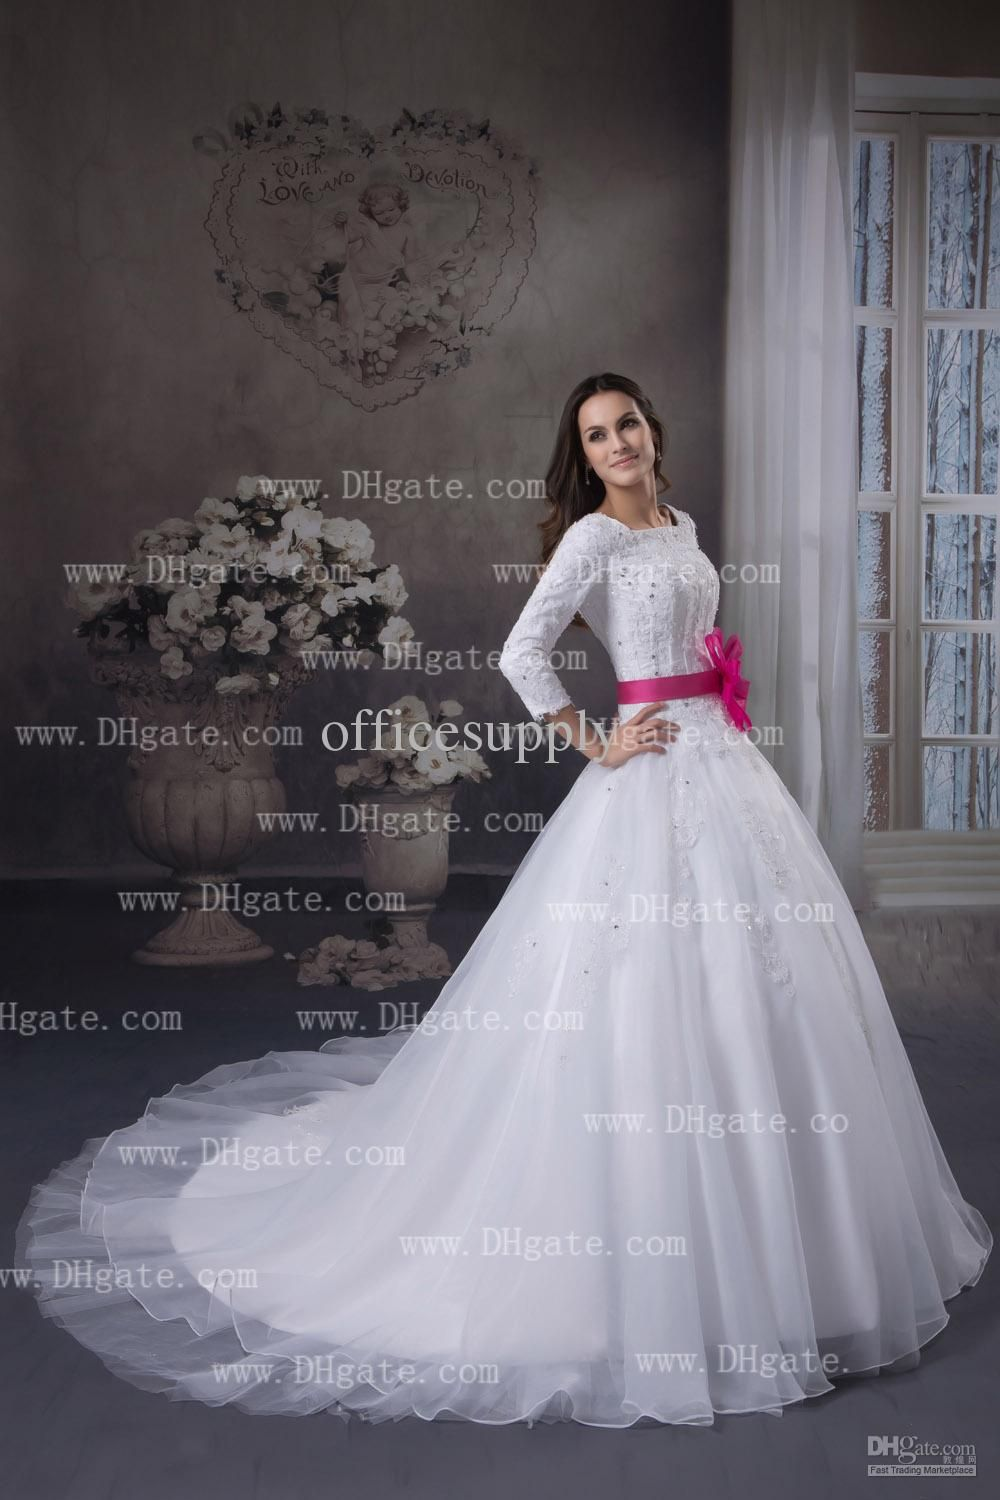 Long sleeves lace wedding dresses backless long court train